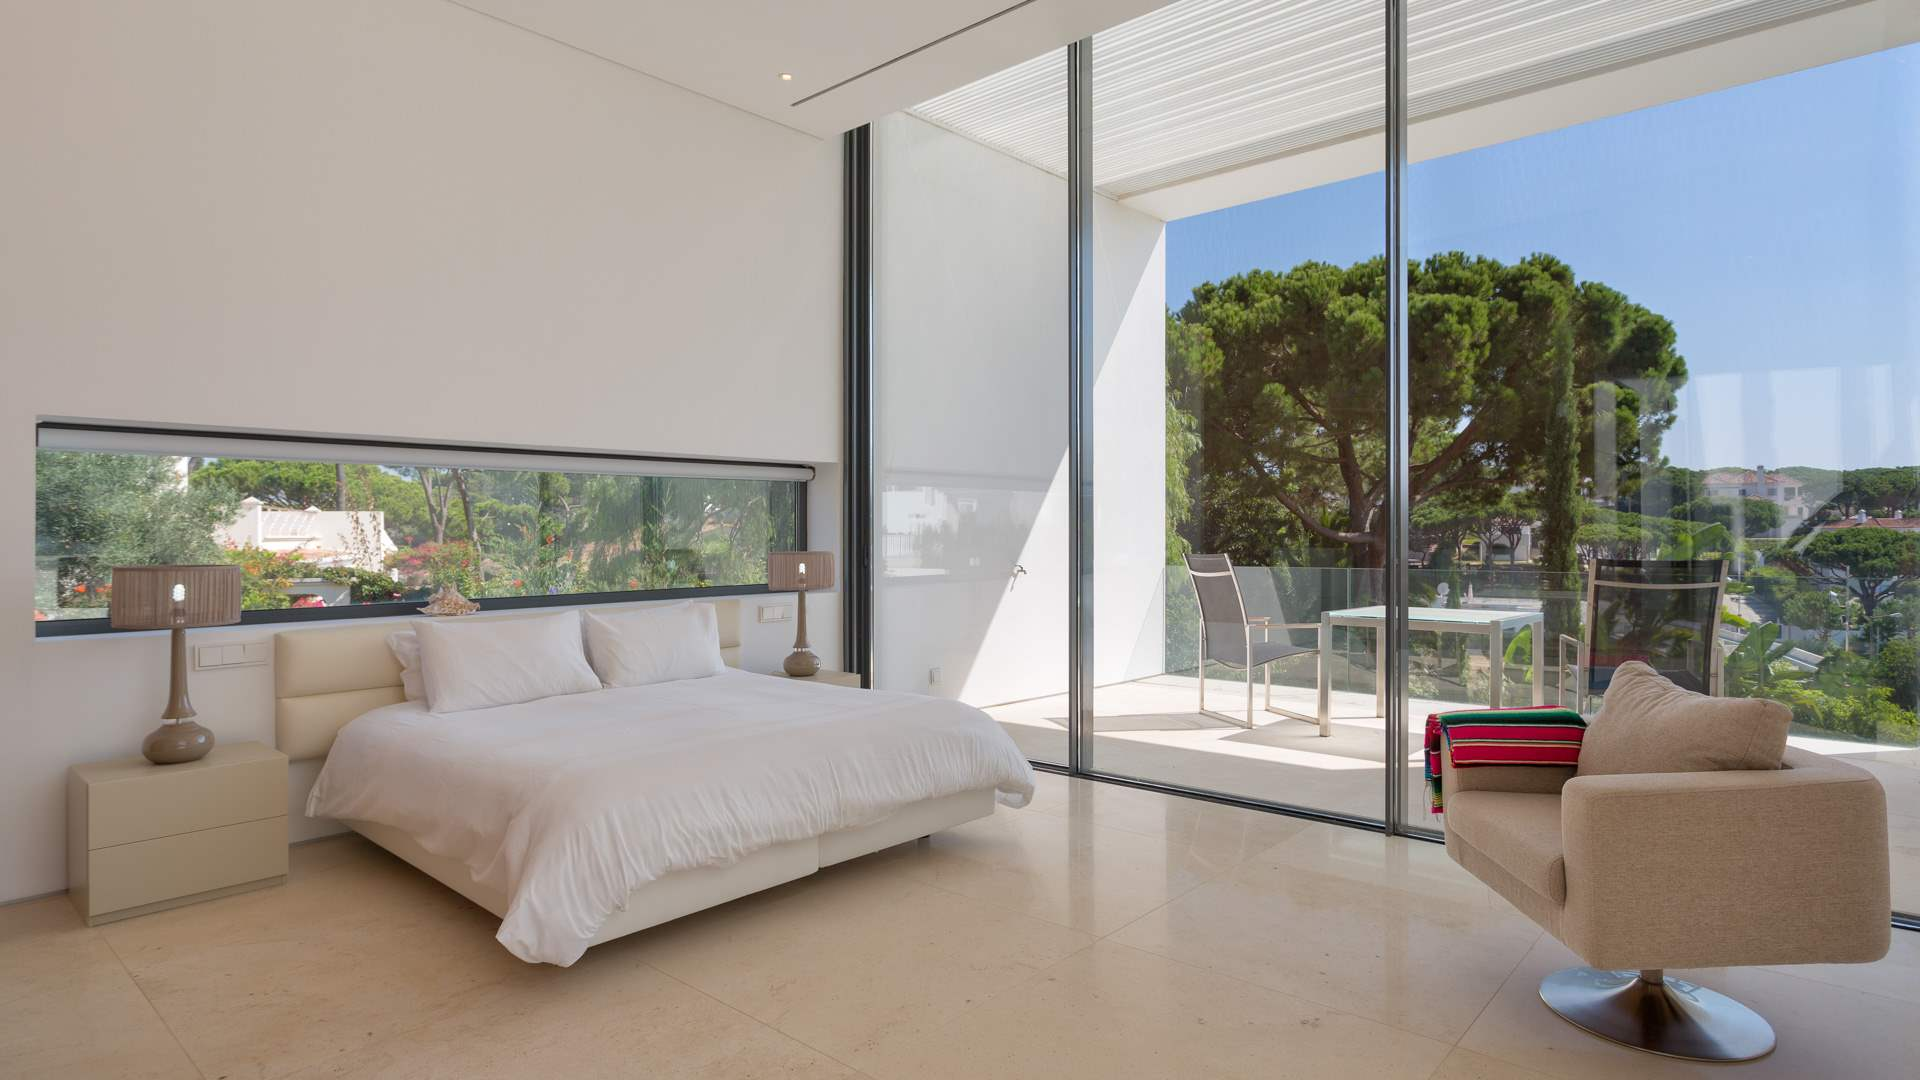 Villa Felicity, 4 bedroom villa in Vale do Lobo, Algarve Photo #16